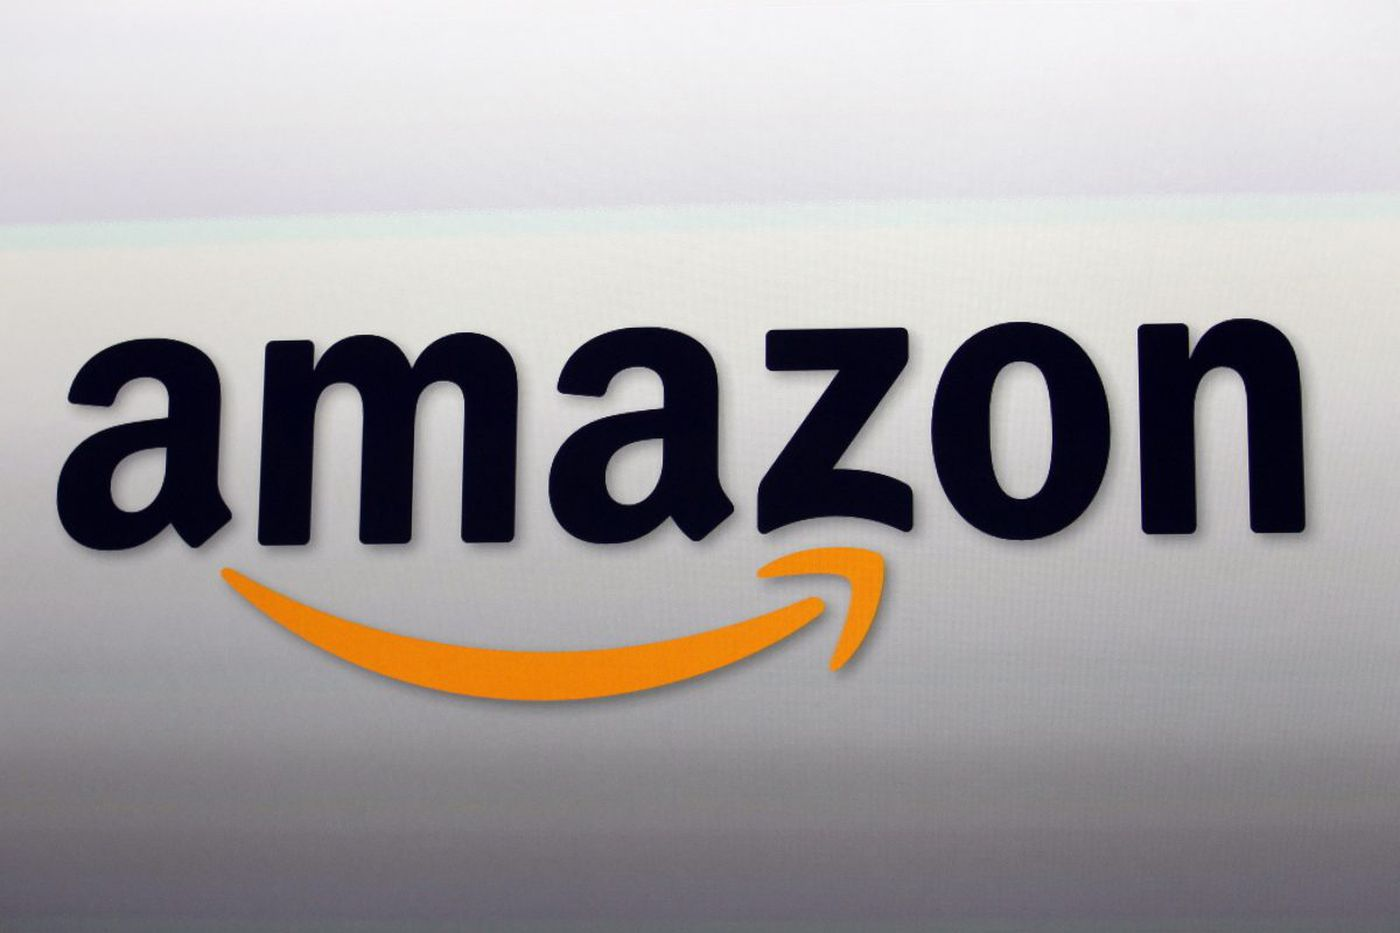 Amazon considers New York, Virginia amid reports of HQ split